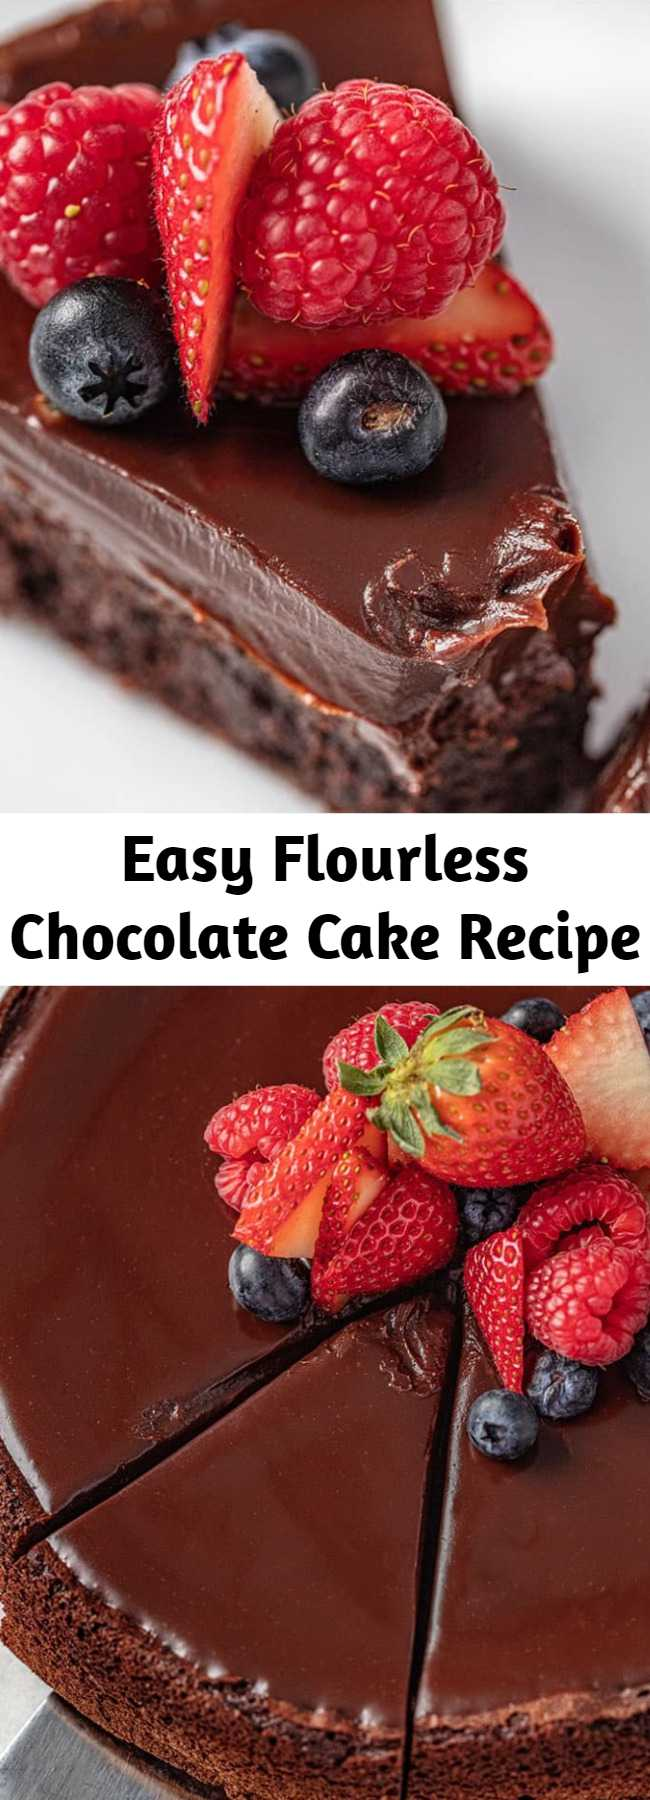 Easy Flourless Chocolate Cake Recipe - Flourless Chocolate Cake is rich, dense, and fudgy and incredibly easy to make. It's a classic chocolate cake recipe that also just so happens to be gluten-free.